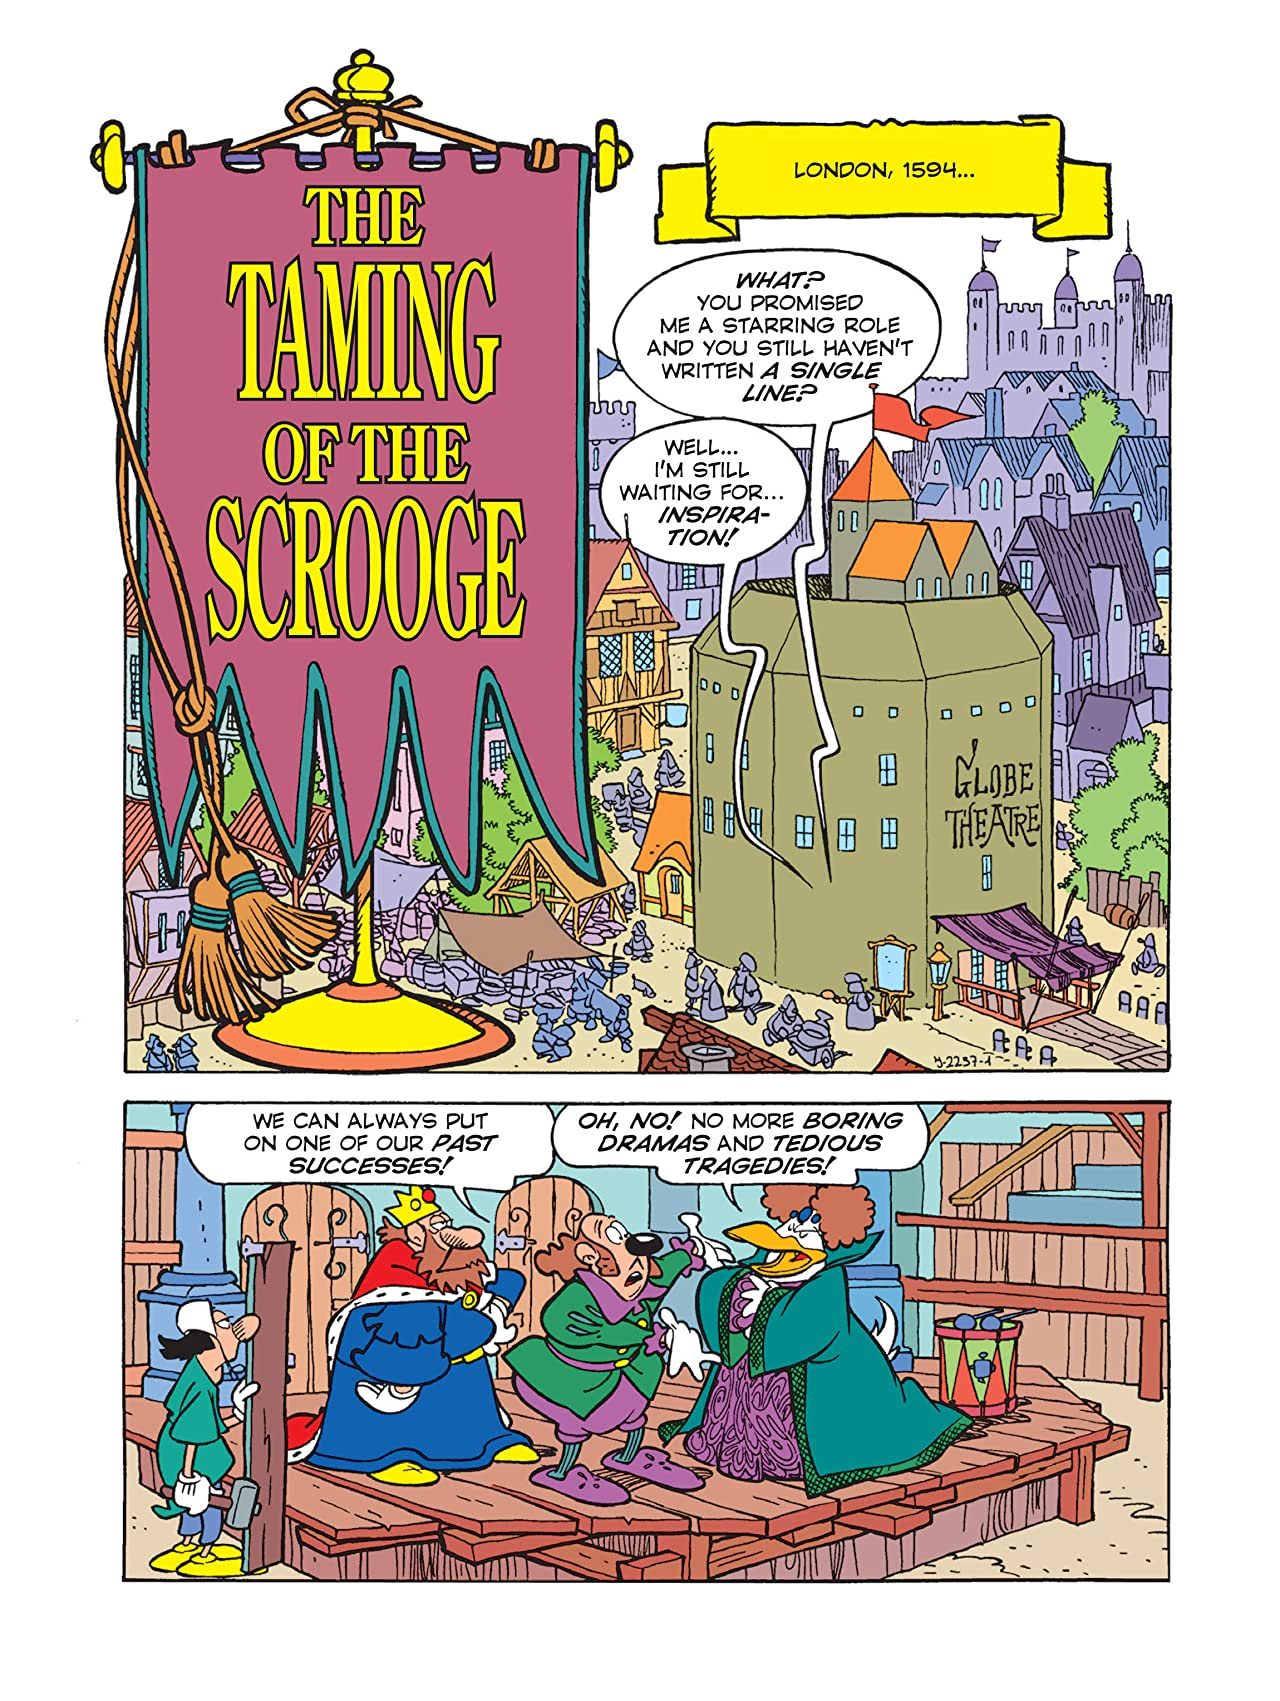 The Taming of the Scrooge